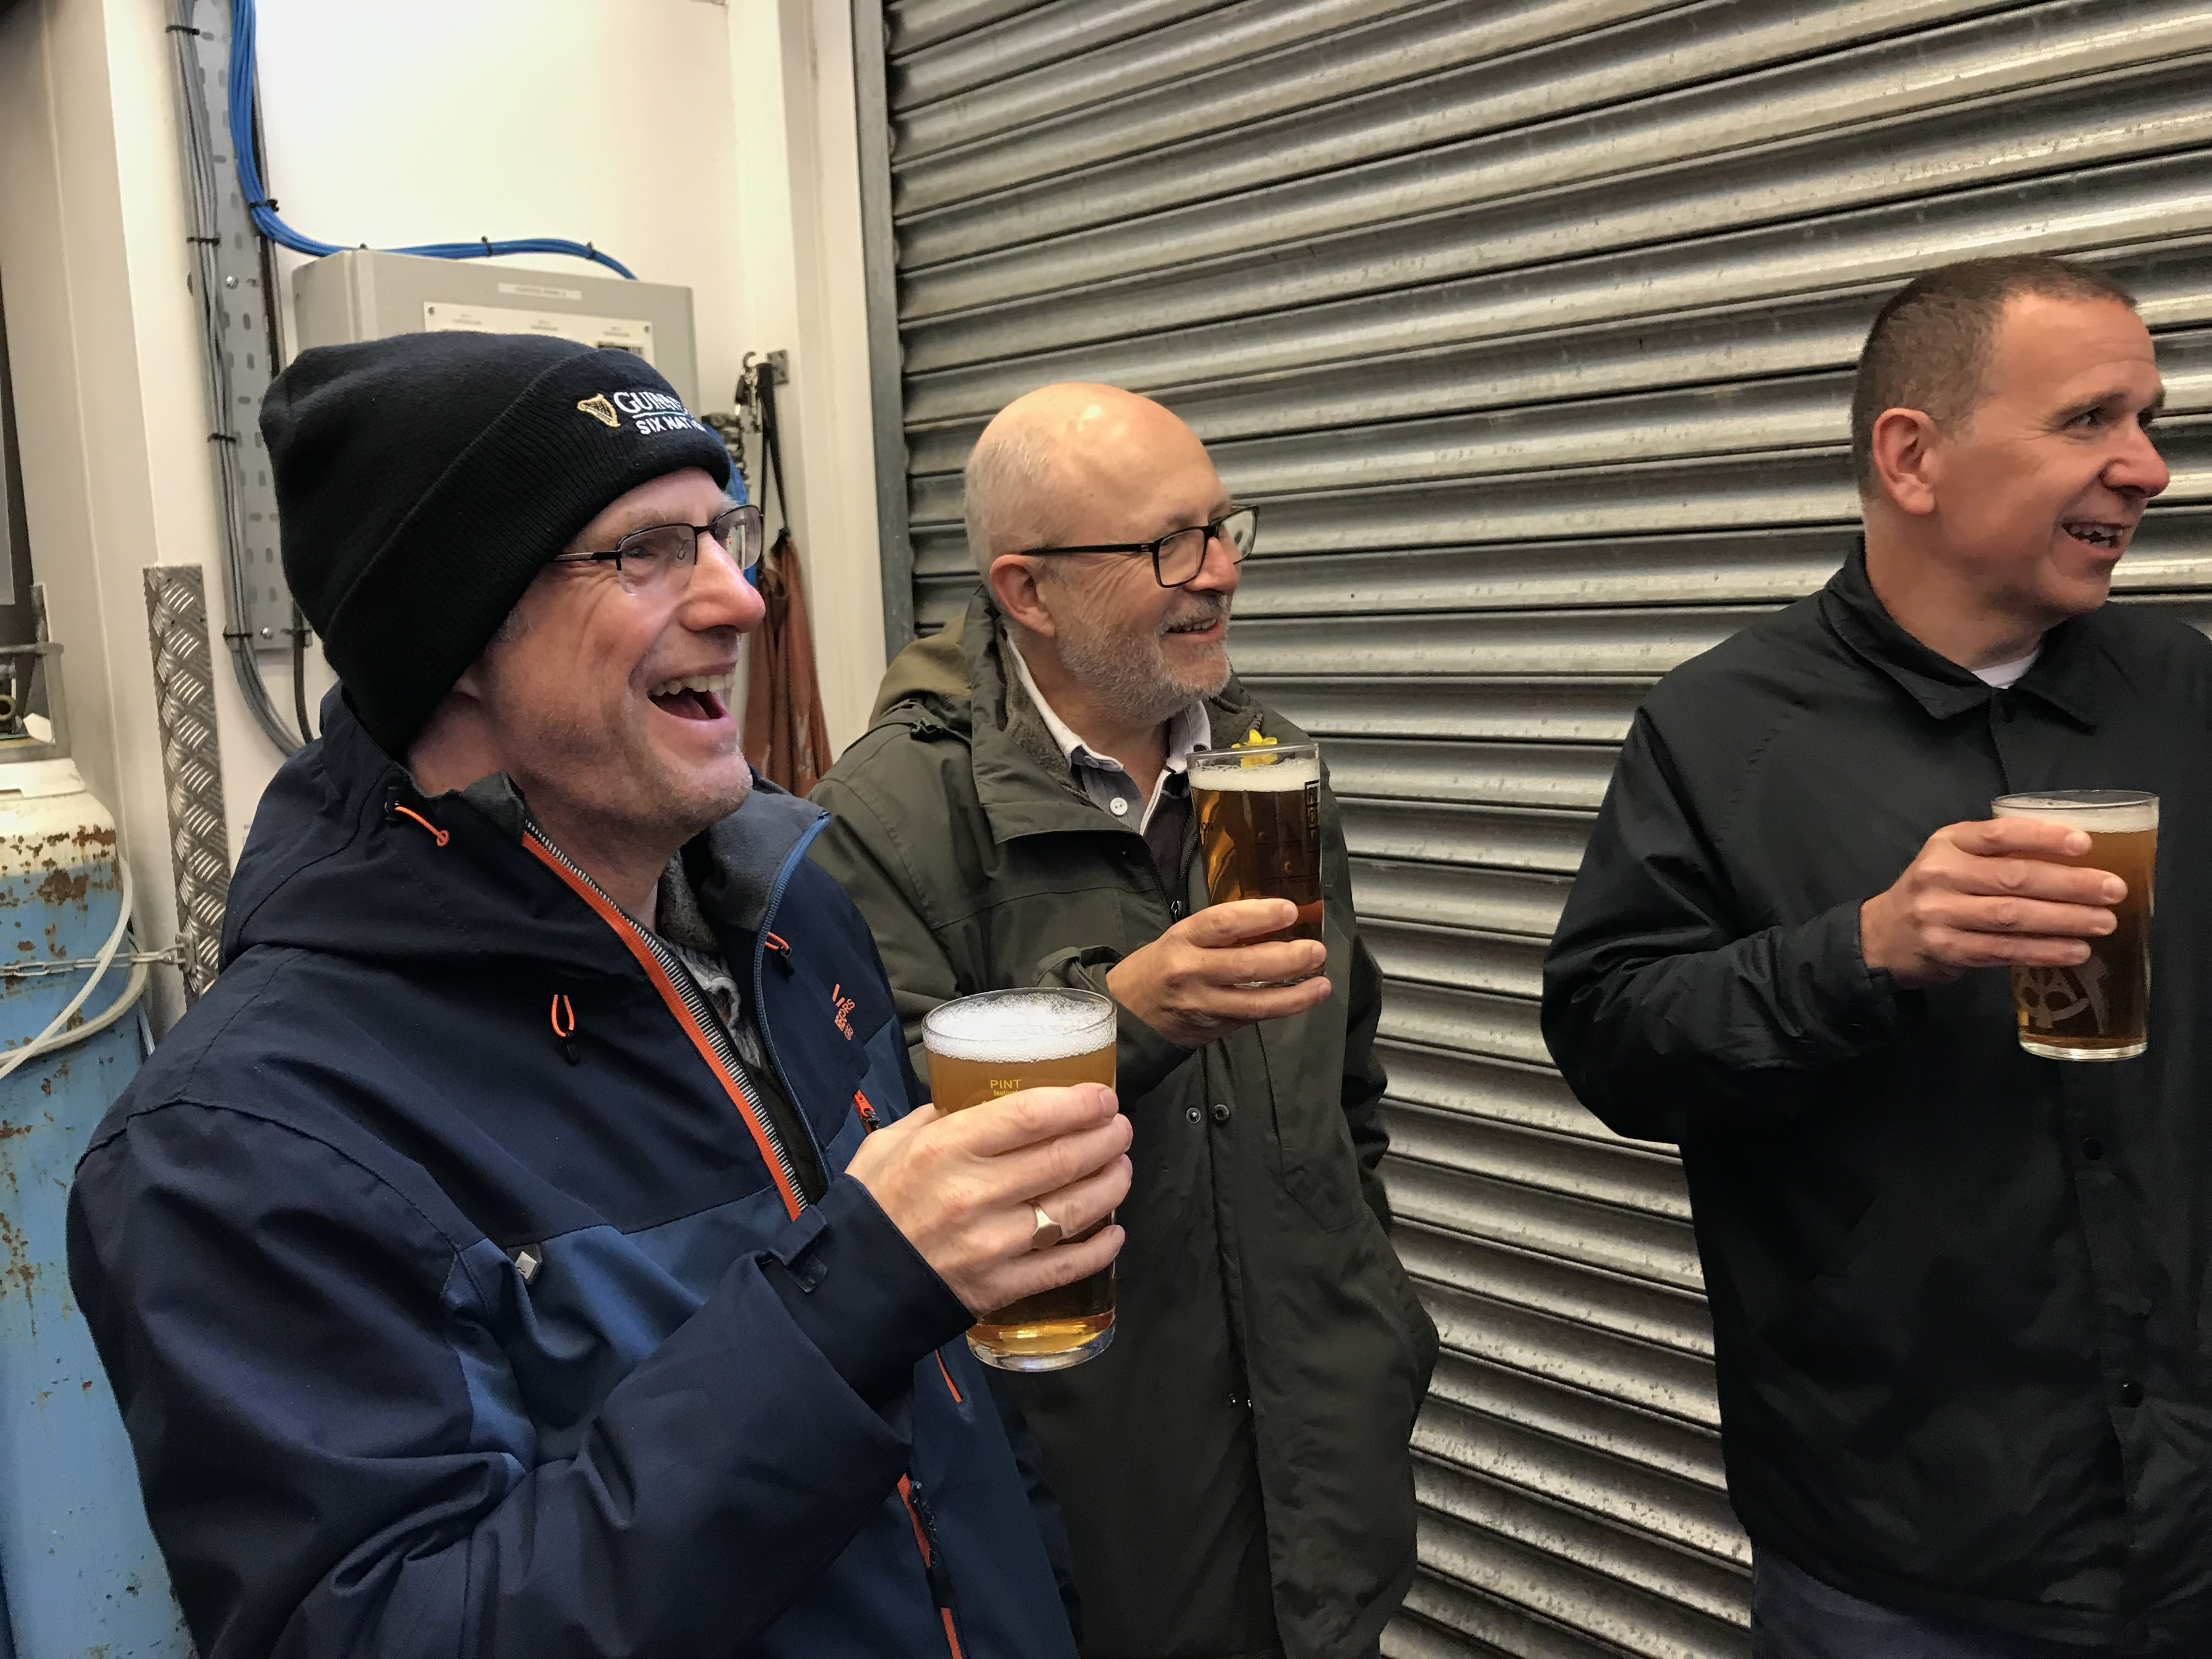 Nottingham Beer Tasting Tour